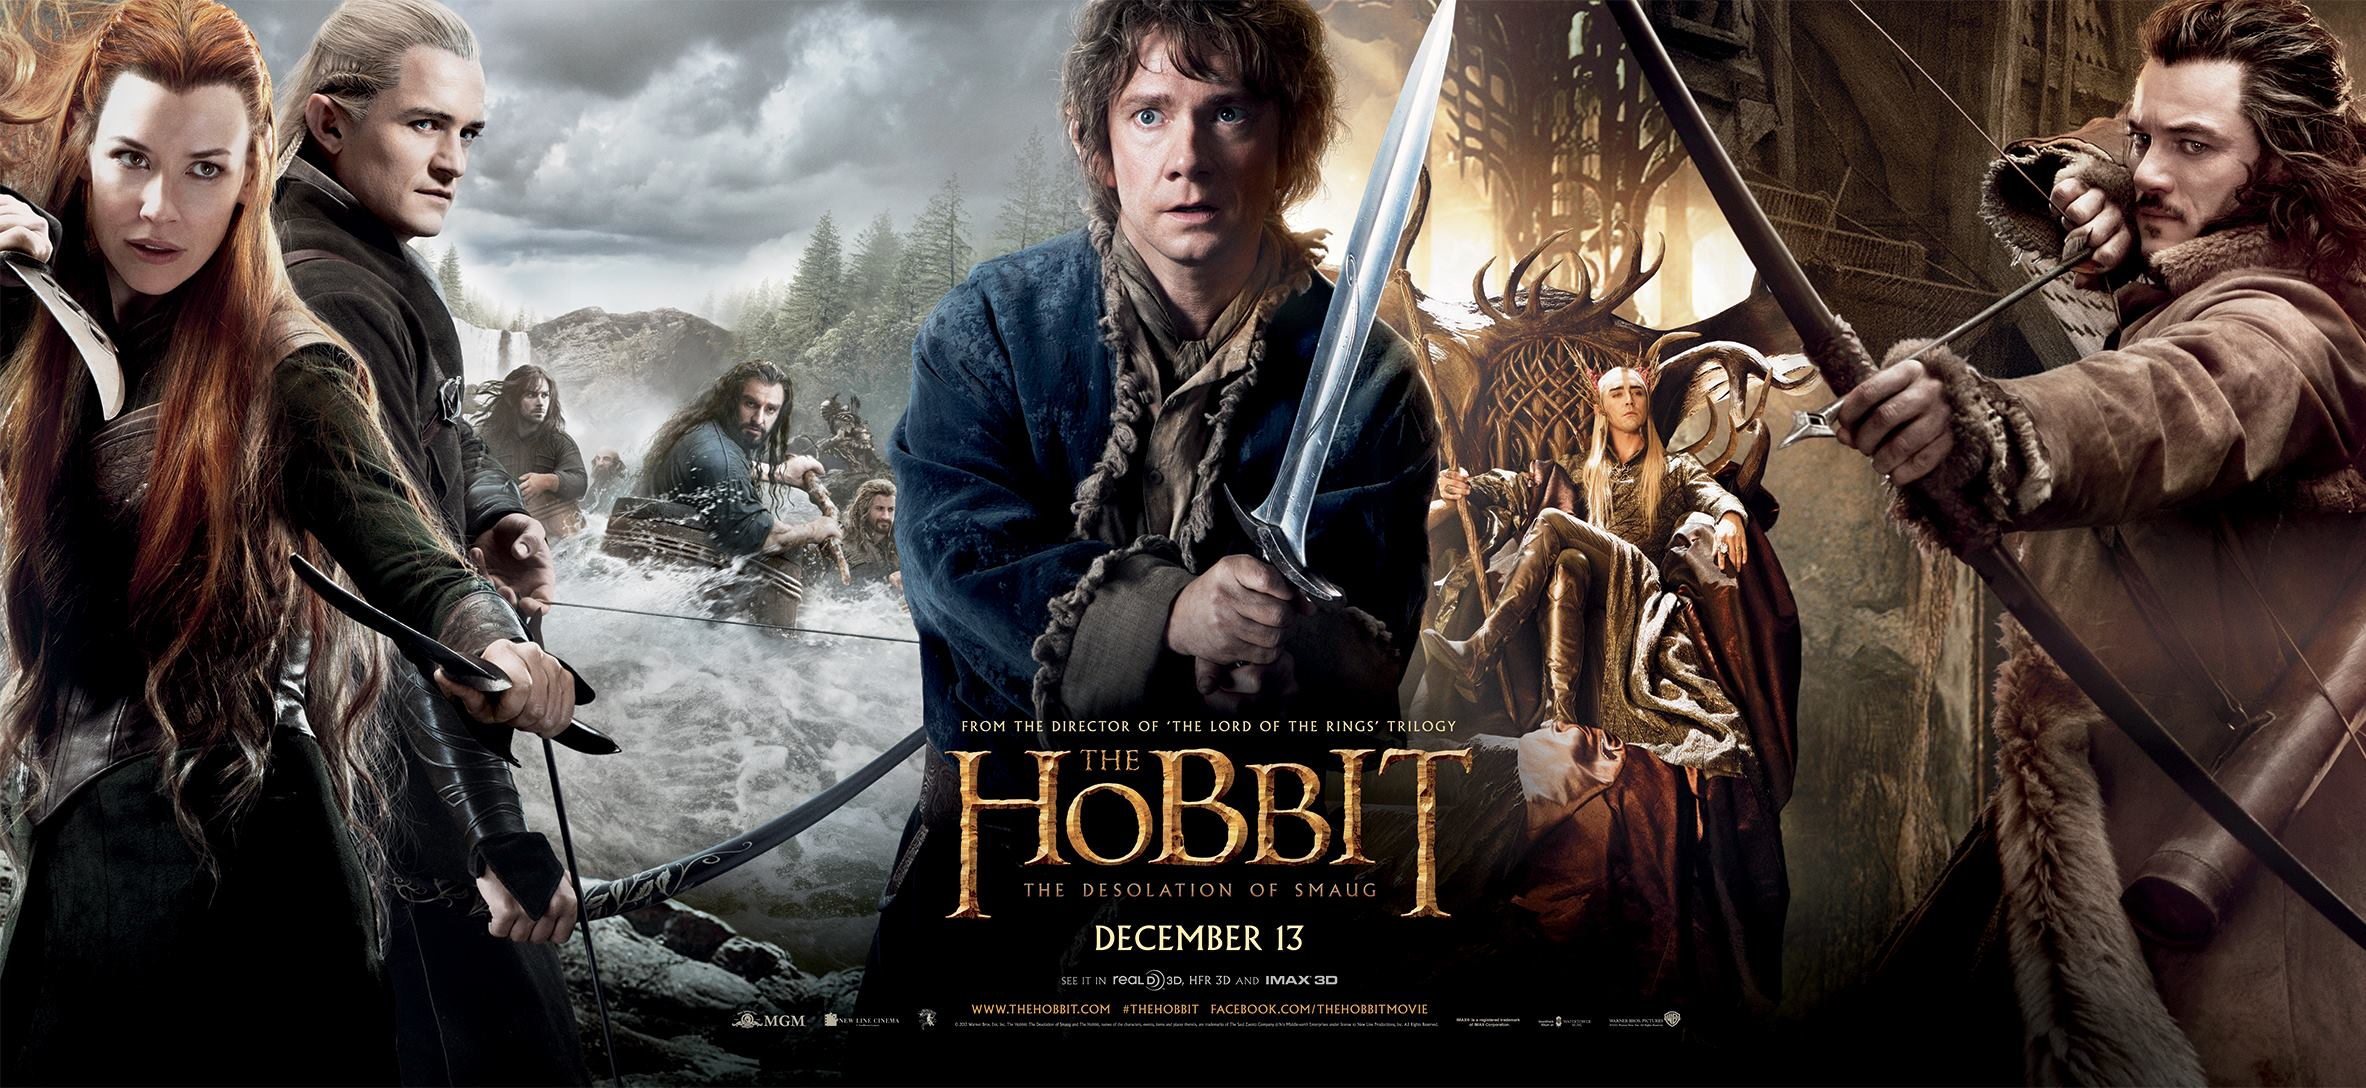 The Hobbit The Desolation of Smaug-Official Poster Banner PROMO BANNER XLG-13NOVEMBRO2013